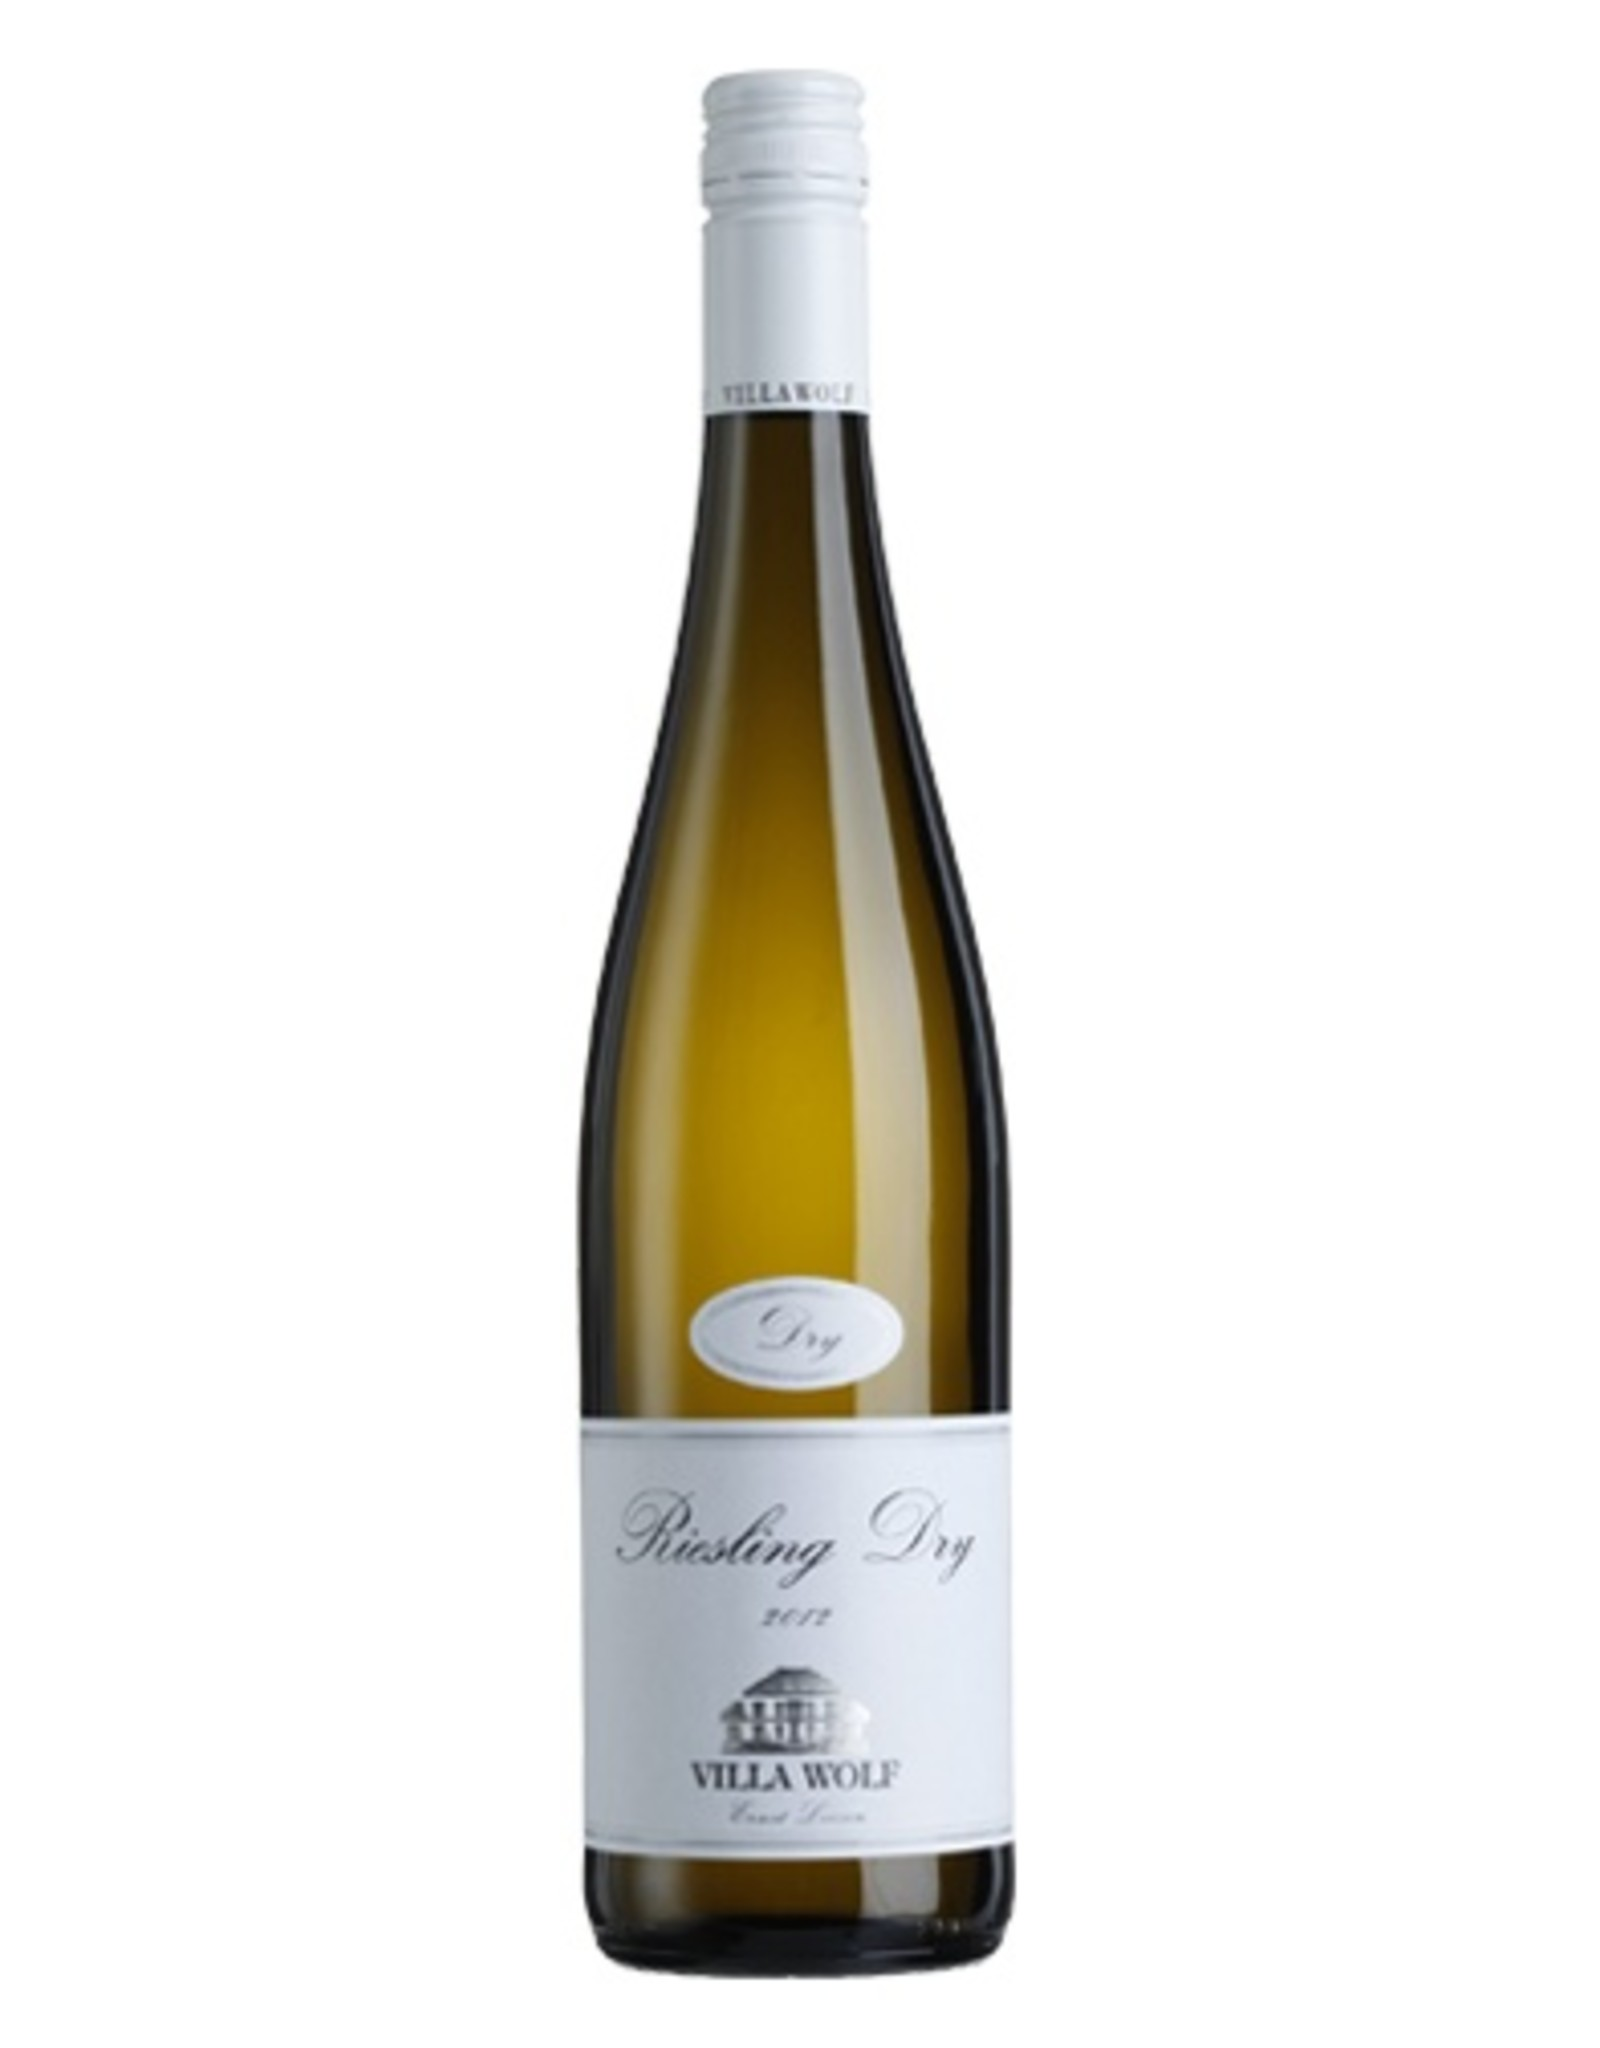 Proef Villa Wolf Riesling Dry